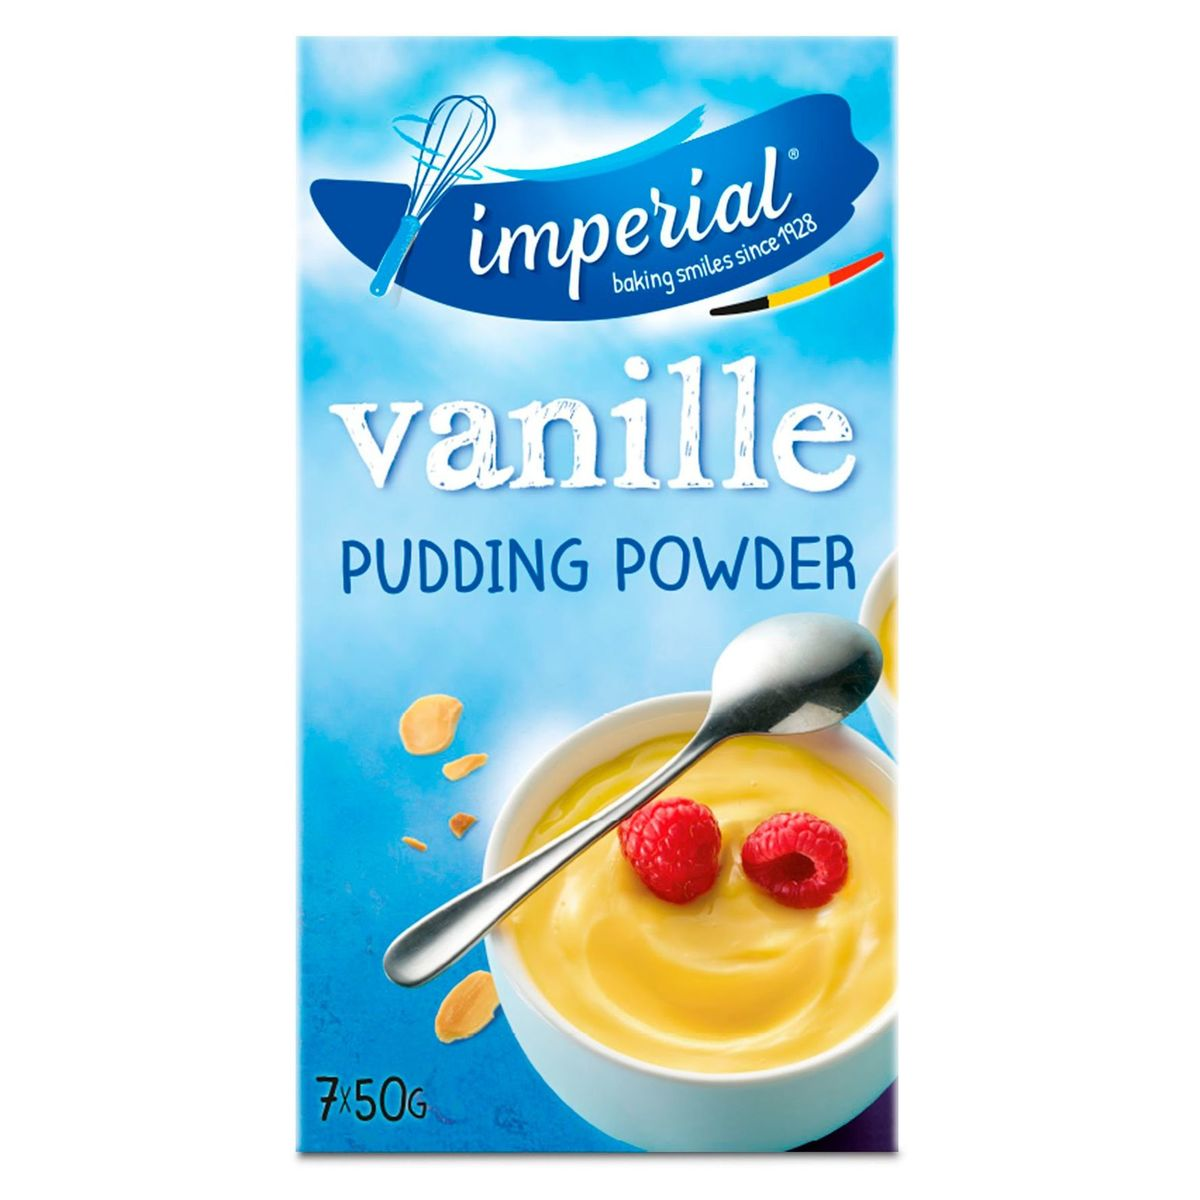 Imperial Pudding Powder Pudding Vanille 7 x 50 g